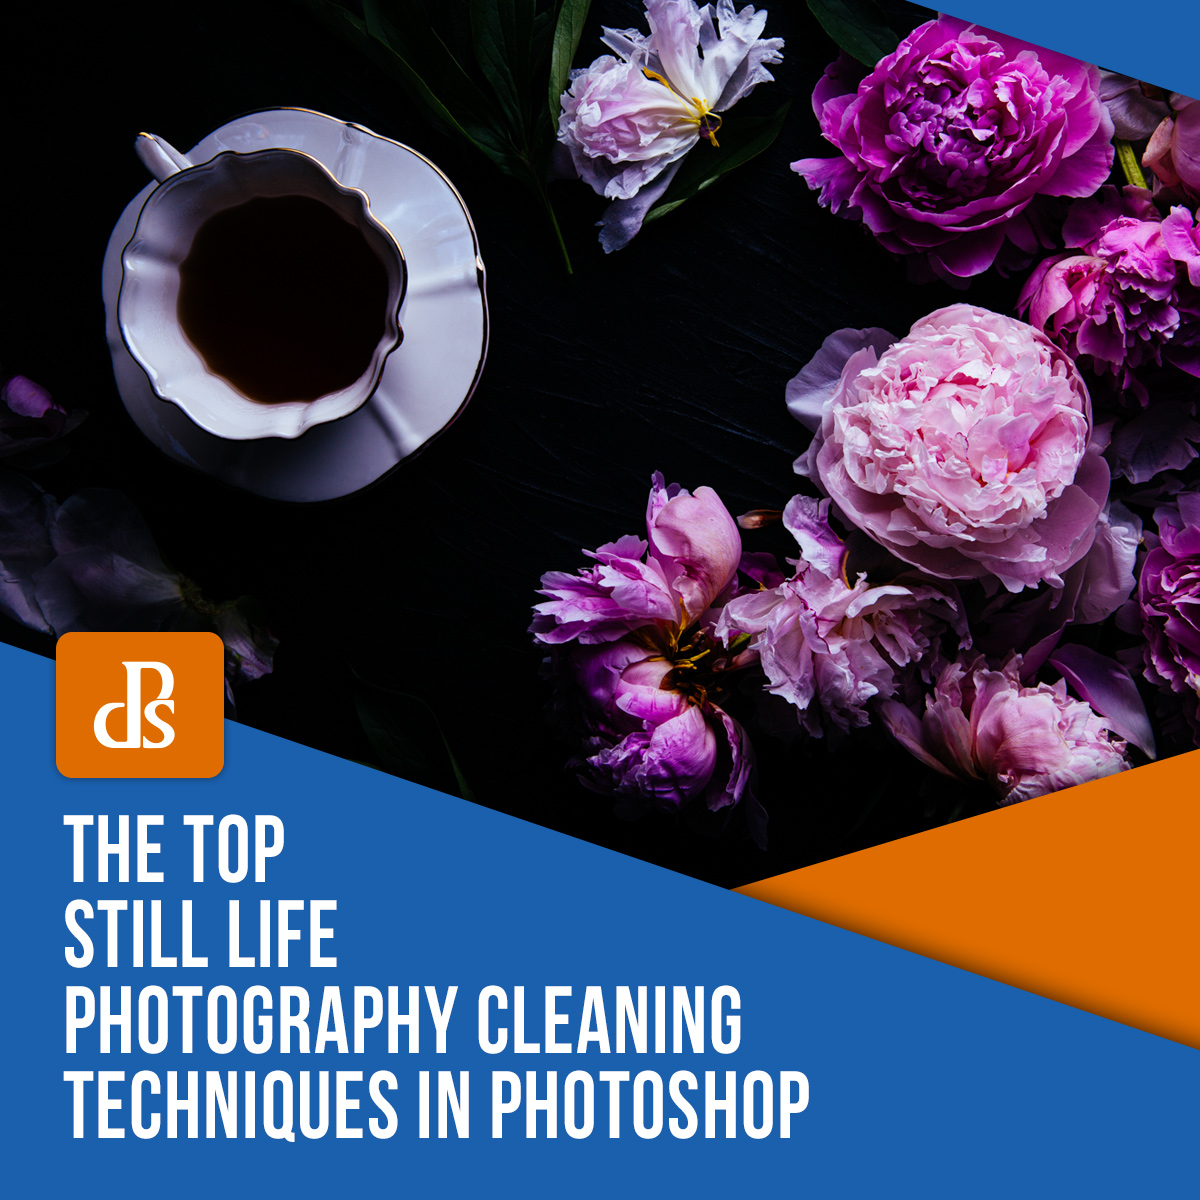 The top Still Life Photography Cleaning Techniques in Photoshop featured image